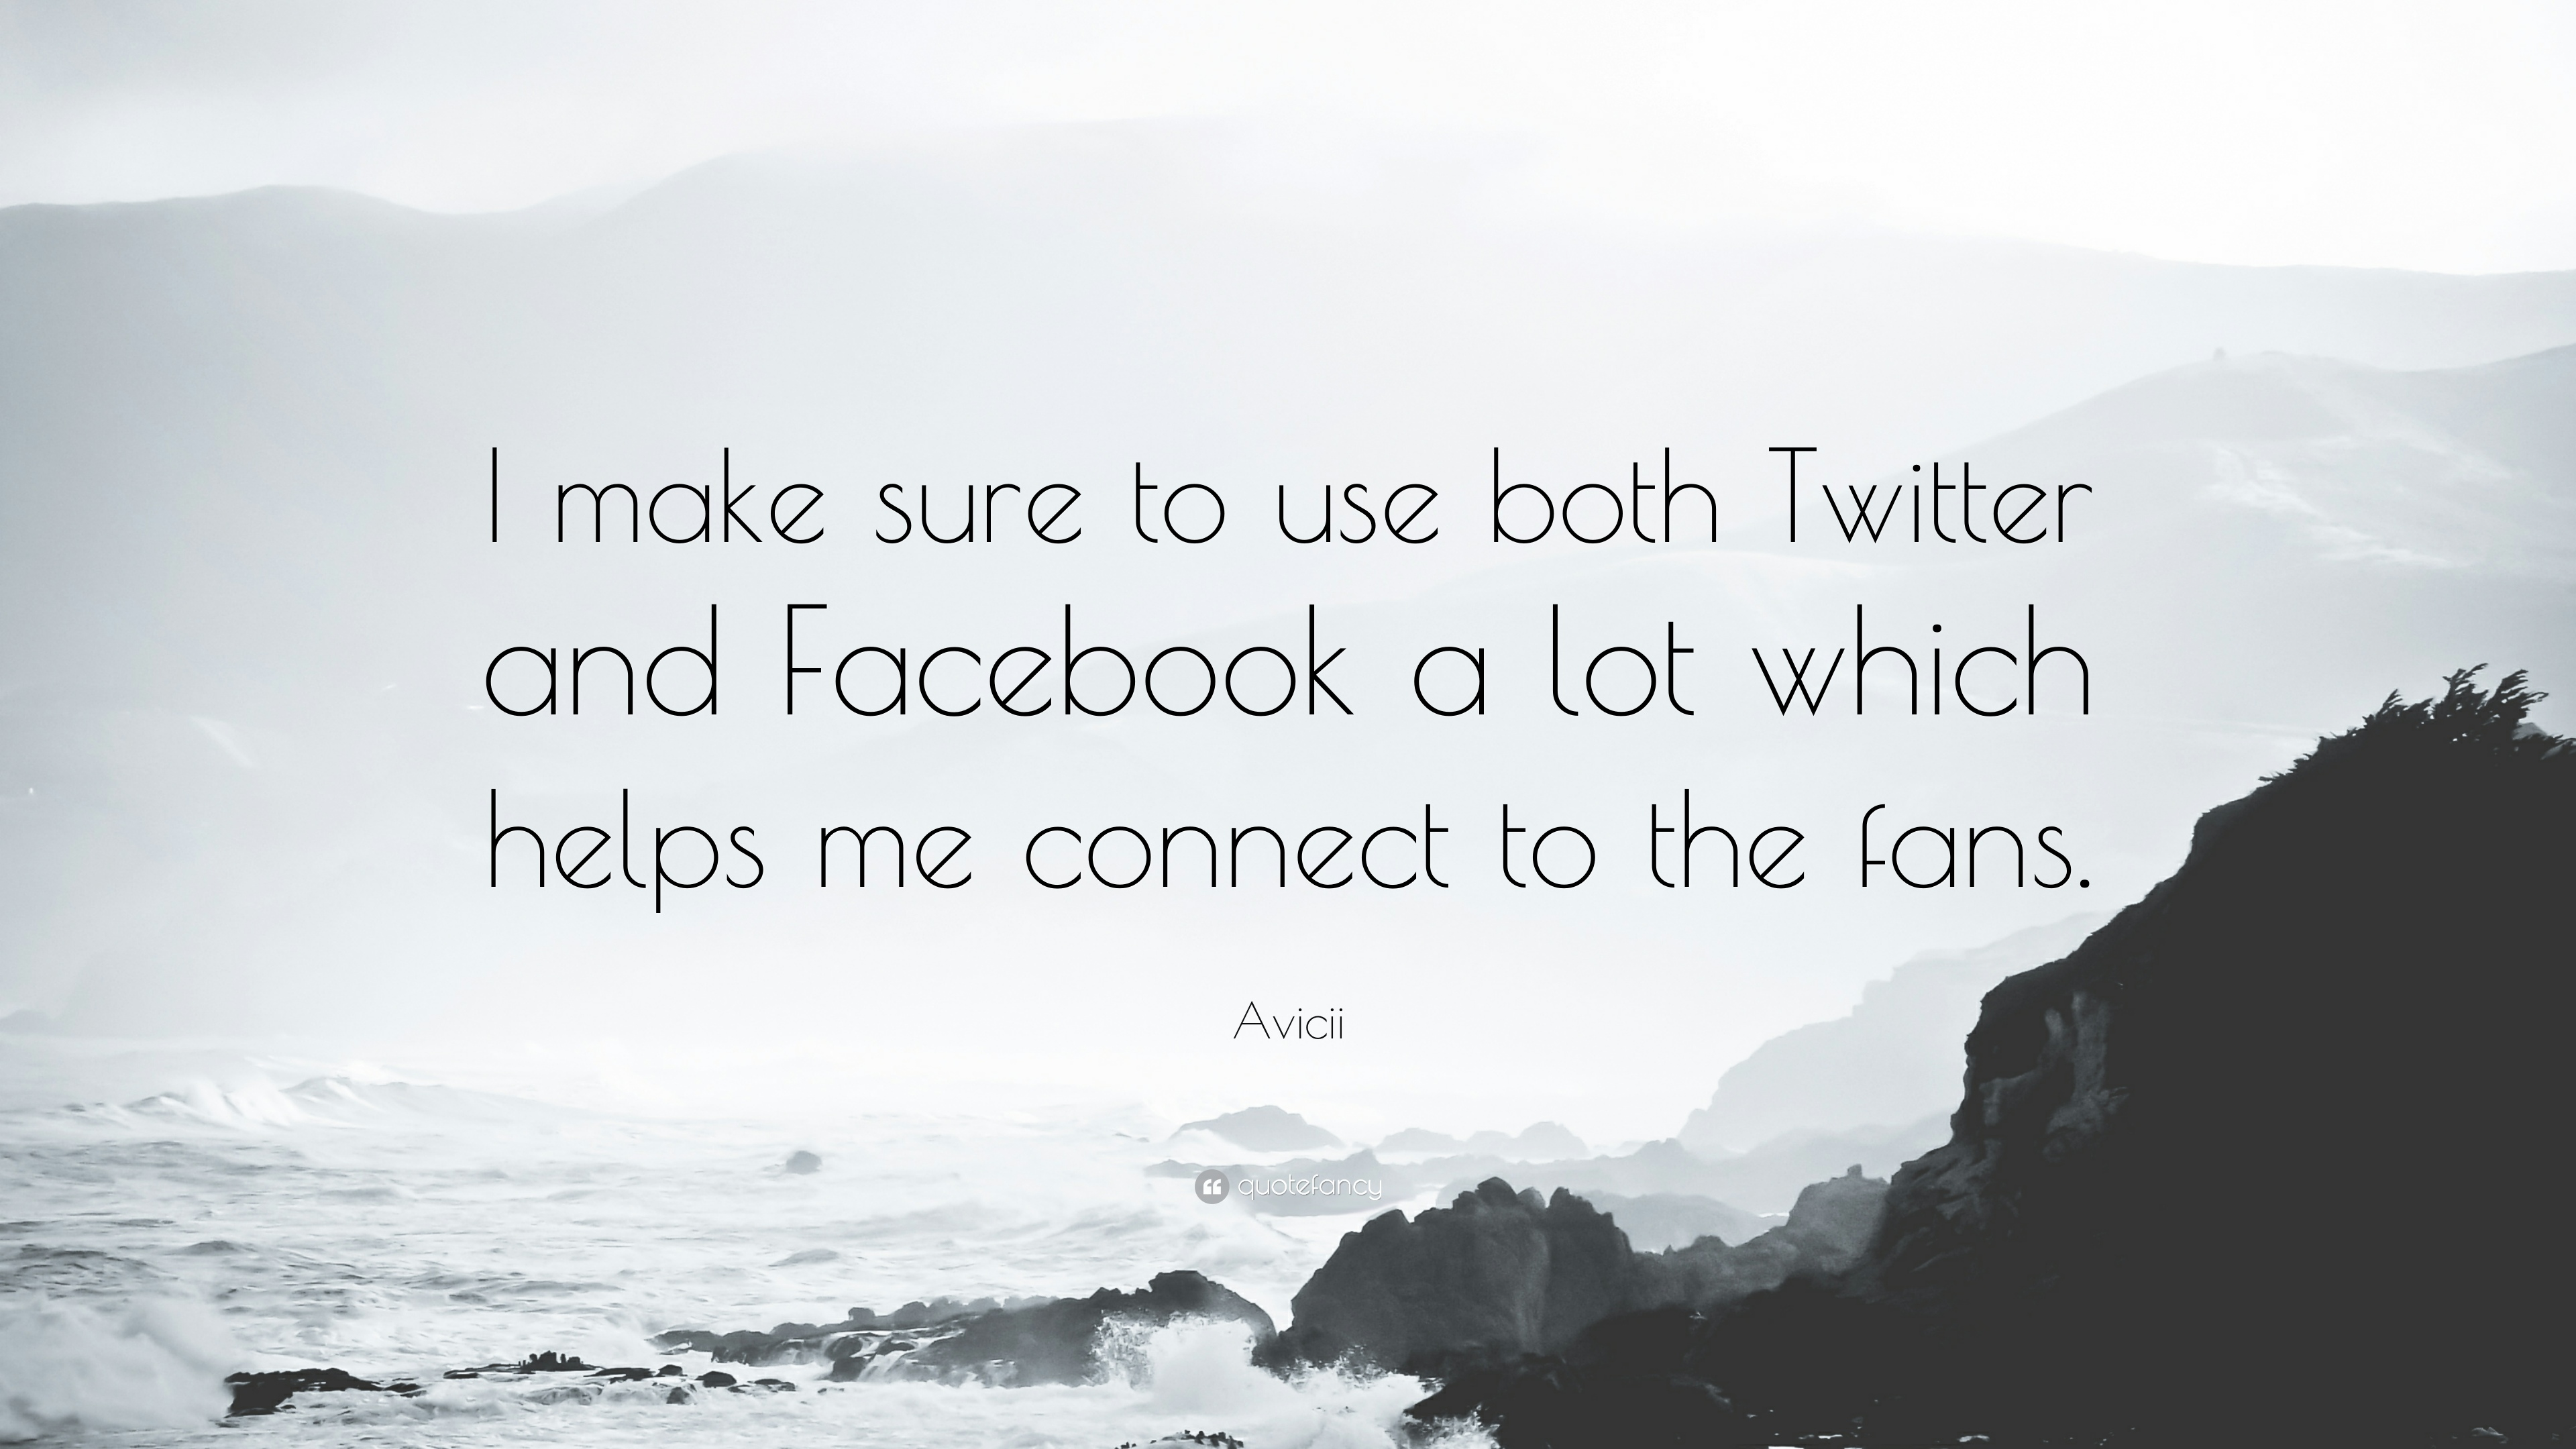 Avicii Quote I Make Sure To Use Both Twitter And Facebook A Lot